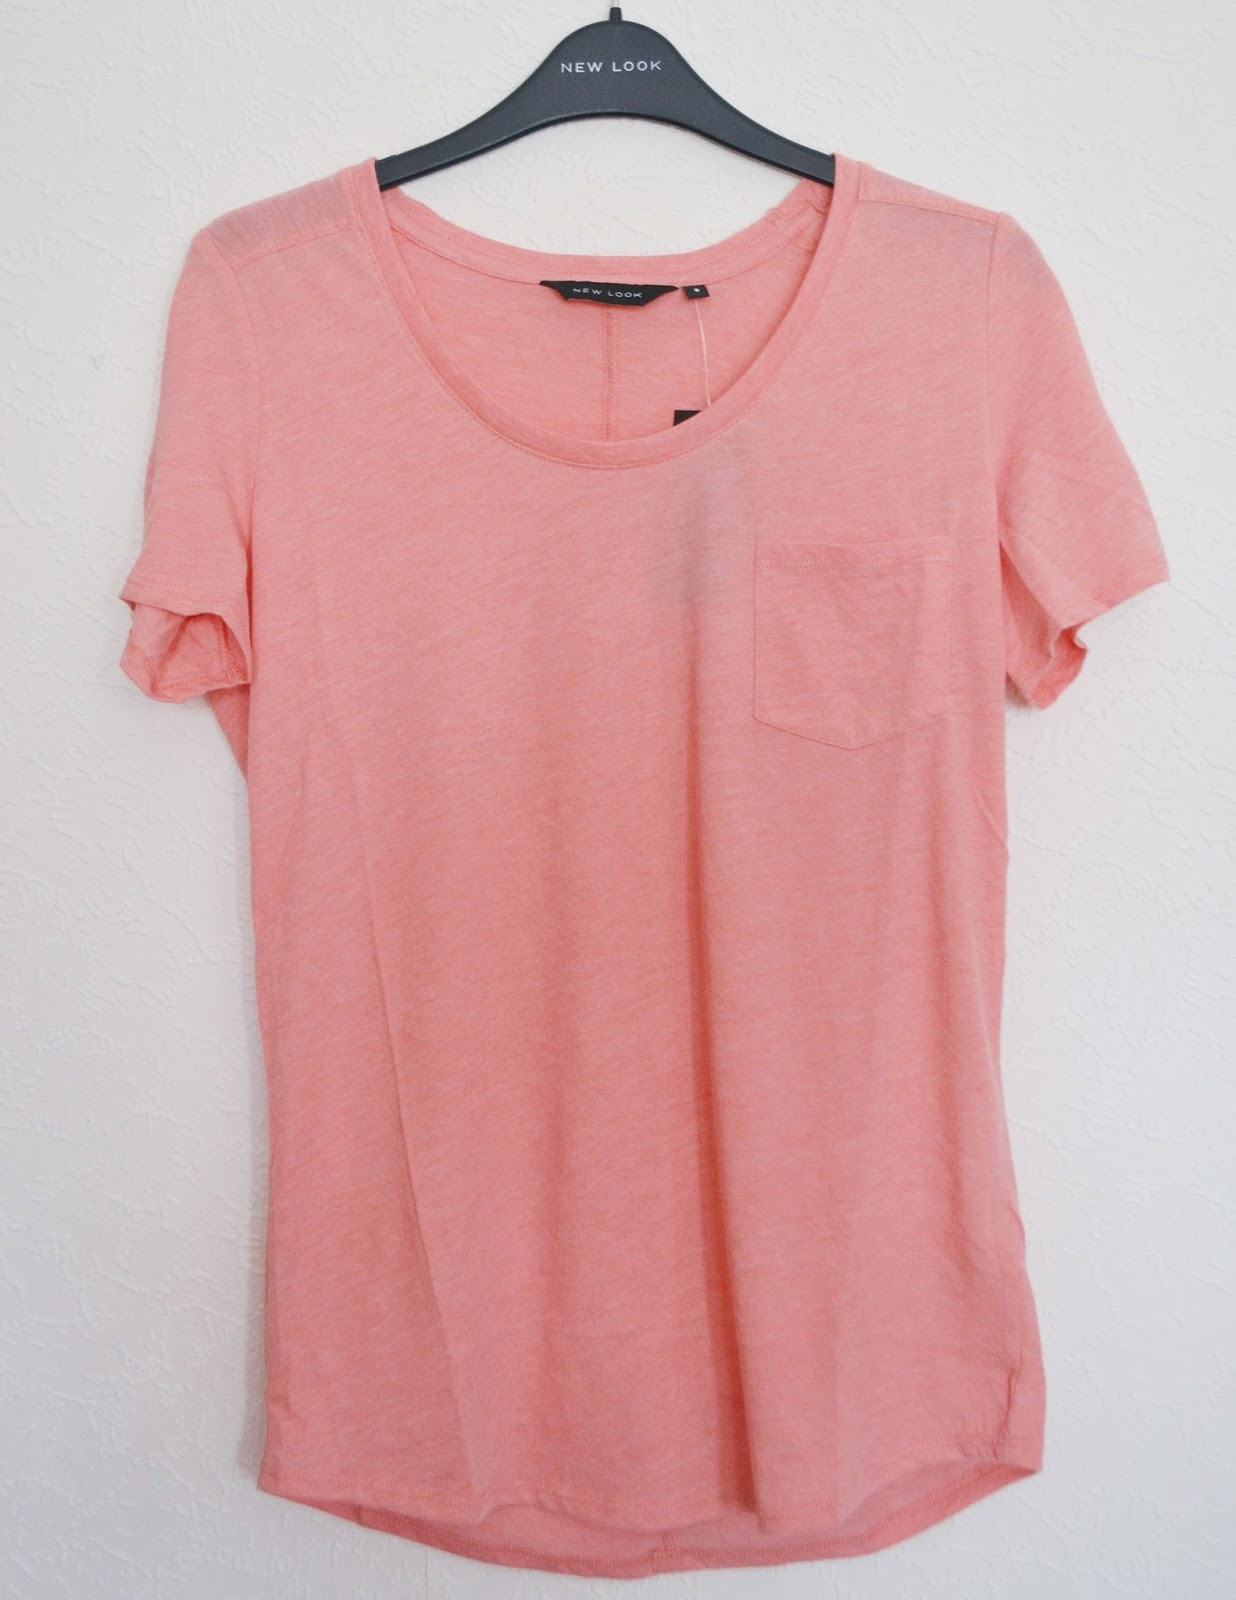 new look pink pocket t shirt